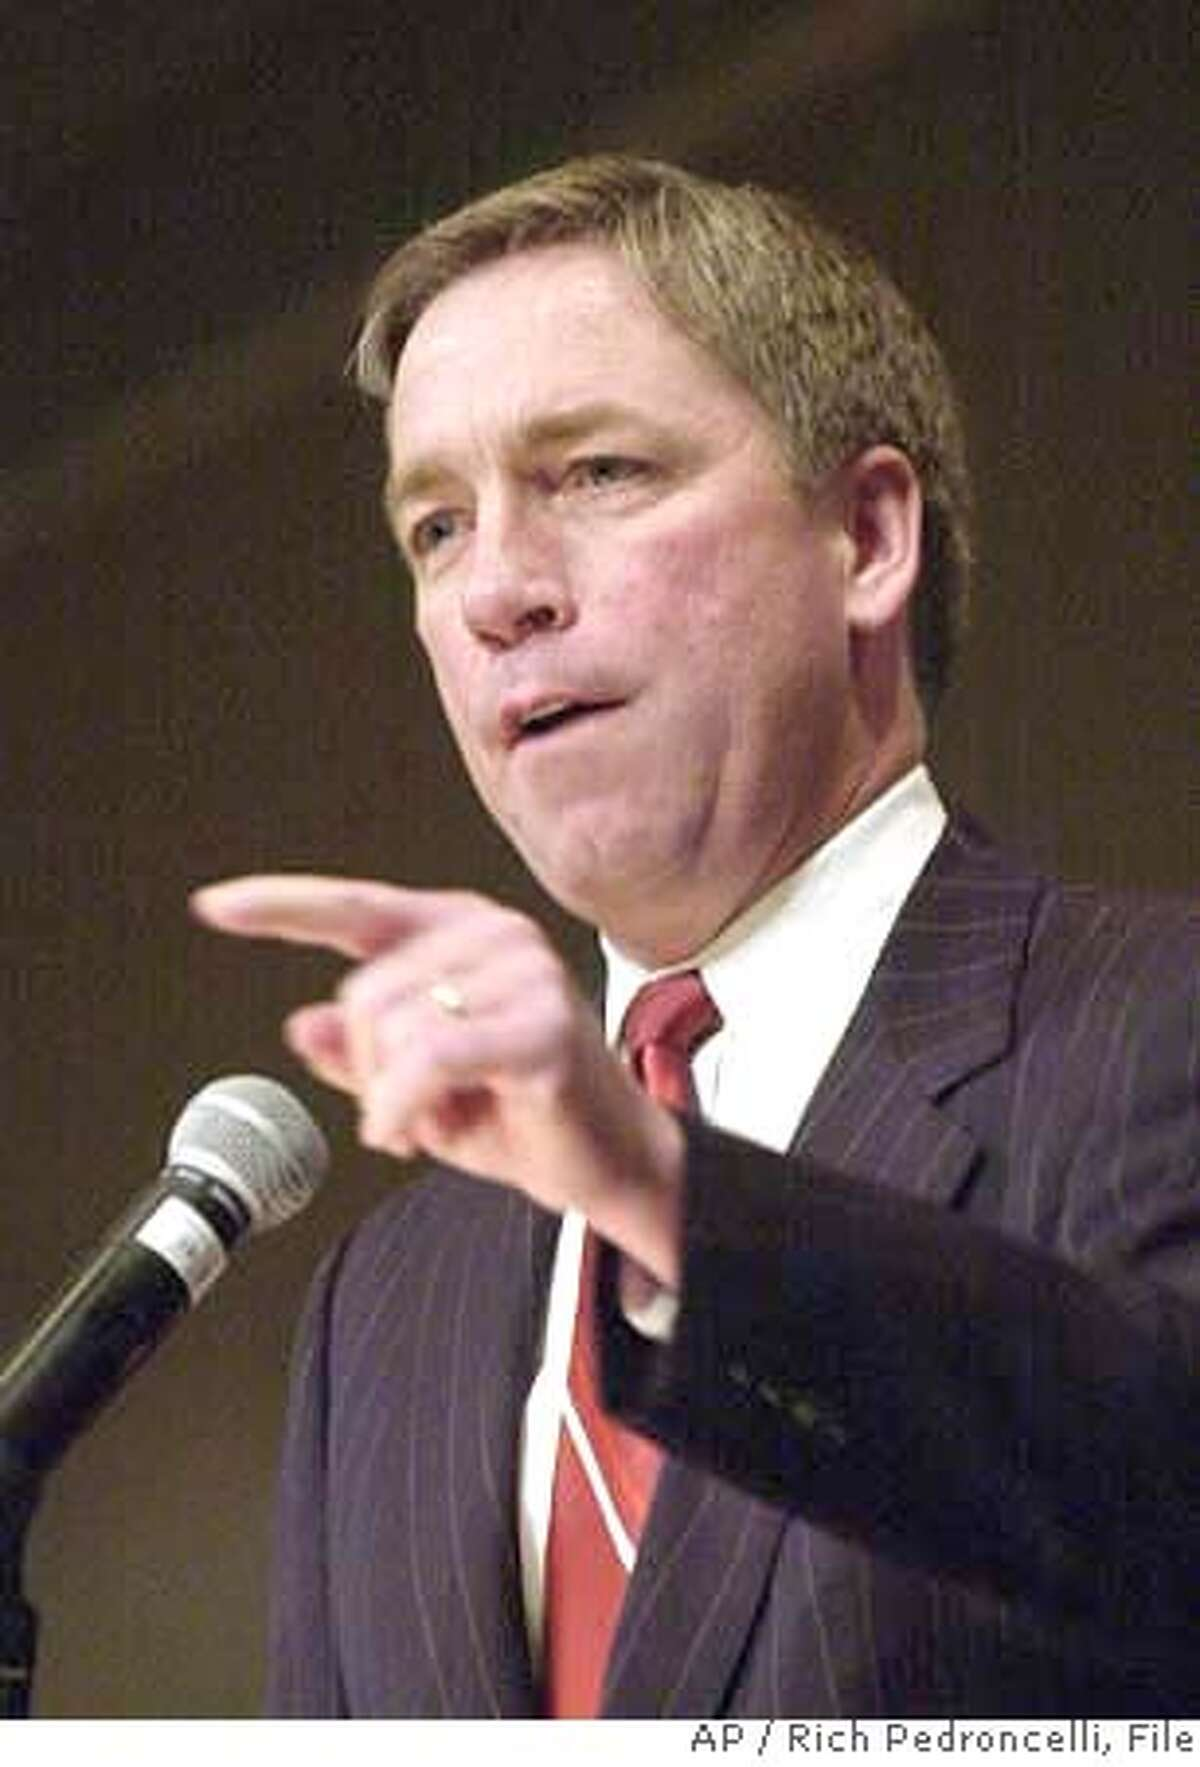 ###Live Caption:** FILE ** Republican Rep. Doug Ose, seen here in file photo taken Saturday, Feb. 22, 2003, in Sacramento, Calif., won't run for the U.S. Senate or seek re-election to the House of Representatives next year, he said Friday, May 16, 2003, in a letter to friends and supporters. His decision leaves California Republicans without a significant challenger to Democratic Sen. Barbara Boxer less than 18 months before the election. (AP Photo/Rich Pedroncelli, File)###Caption History:** FILE ** Republican Rep. Doug Ose, seen here in file photo taken Saturday, Feb. 22, 2003, in Sacramento, Calif., won't run for the U.S. Senate or seek re-election to the House of Representatives next year, he said Friday, May 16, 2003, in a letter to friends and supporters. His decision leaves California Republicans without a significant challenger to Democratic Sen. Barbara Boxer less than 18 months before the election.(AP Photo/Rich Pedroncelli, File) ALSO RAN: 1/19/2004 Rep. Doug Ose is upset at TV and the FCC for letting the words be aired. Rep. Doug Ose Rep. Doug Ose Rep. Doug Ose, R-Sacramento, wants the FCC to shape up. ProductNameChronicle###Notes:10.83 x 2.5###Special Instructions:CAT